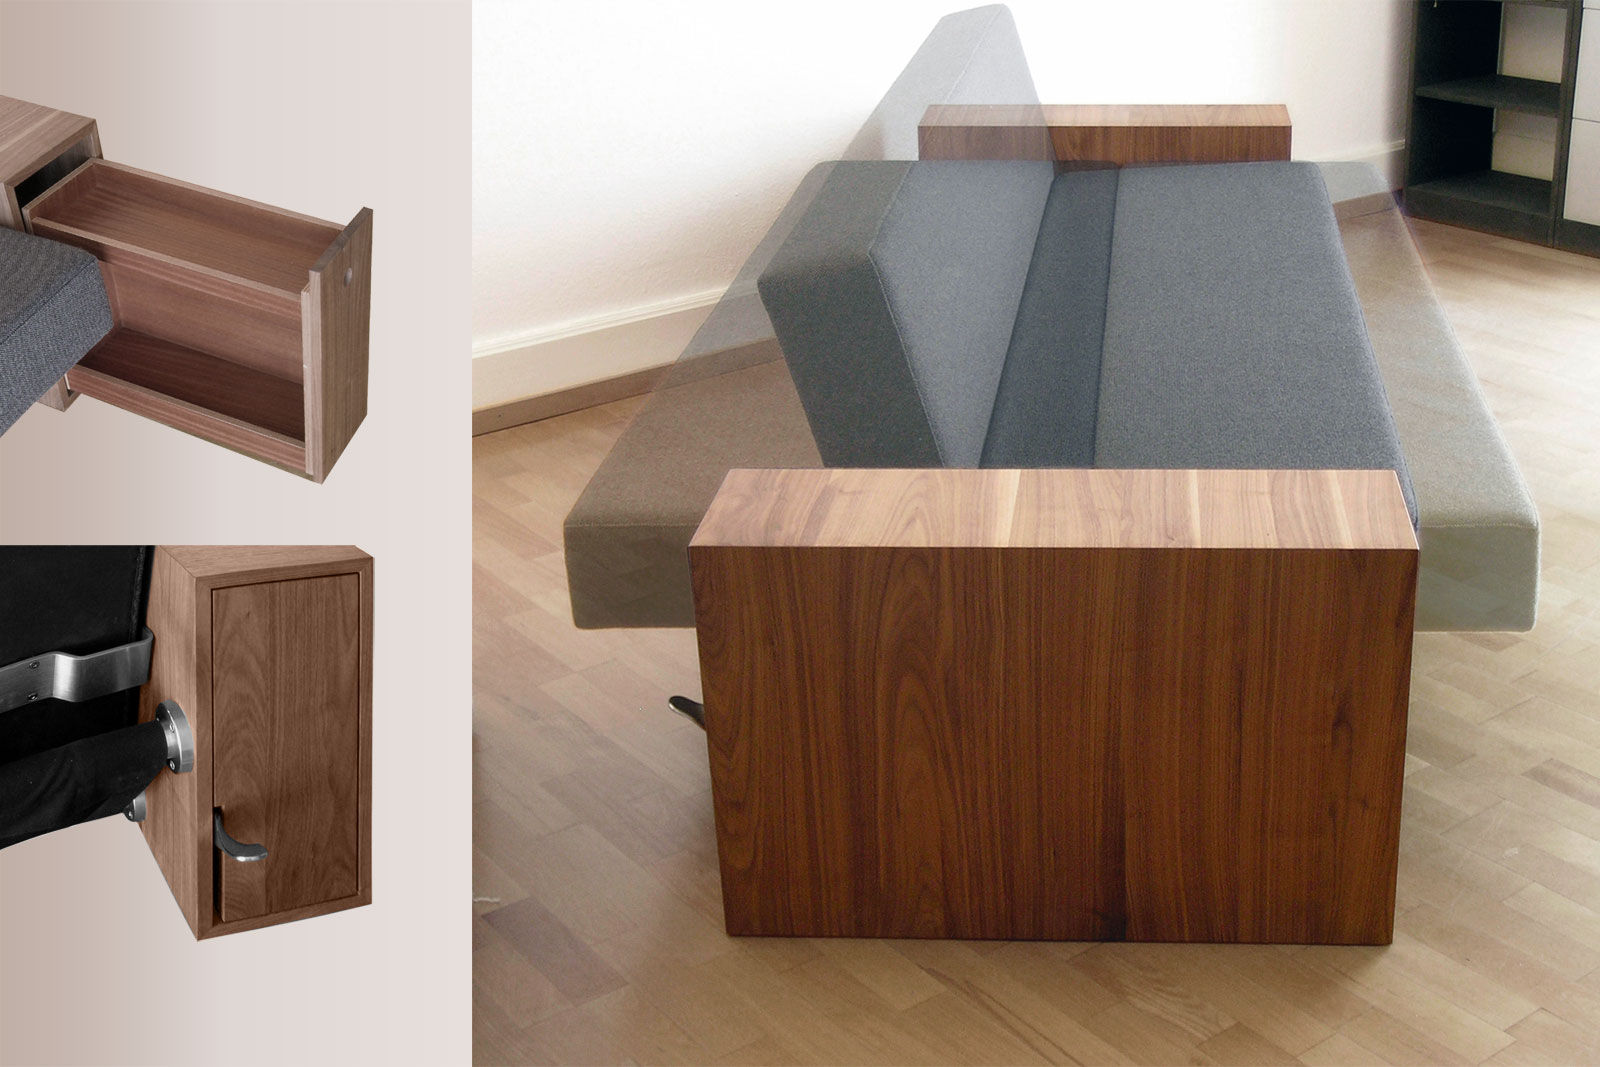 Design furniture individual and made to measure by Roberto Della Pietra, Switzerland